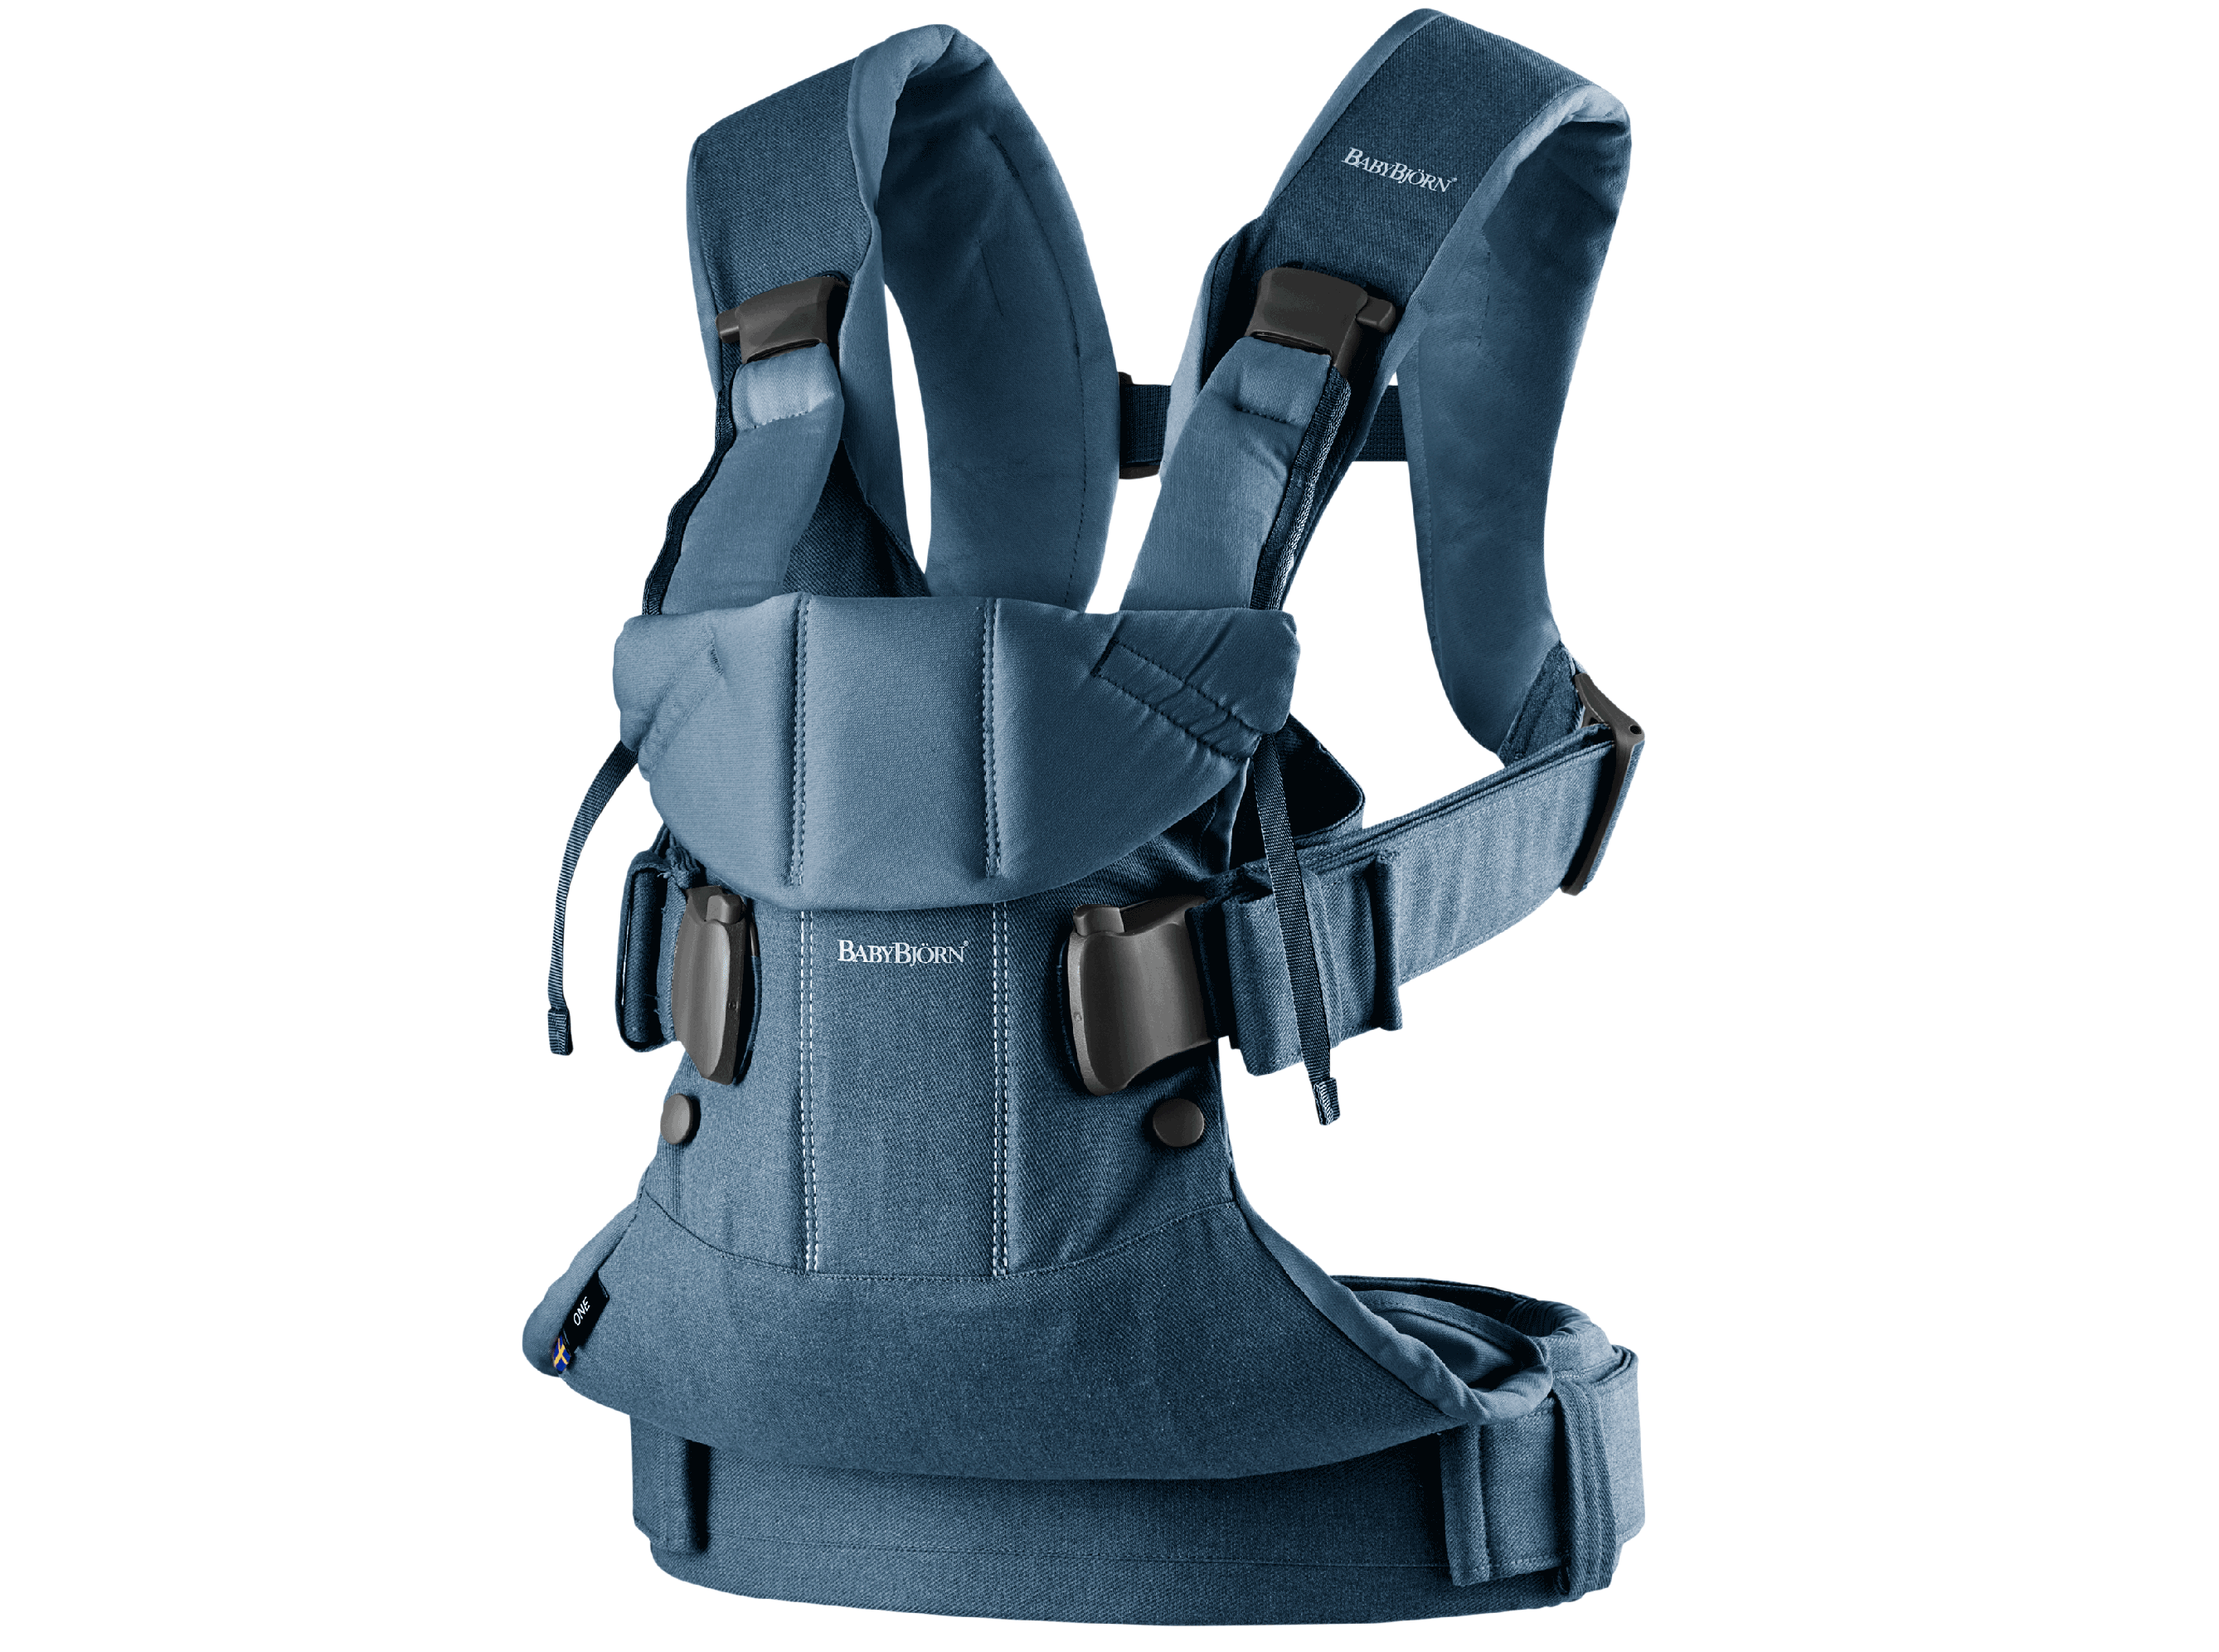 BABYBJÖRN Baby Carrier One - Classic denim/Midnight blue, Cotton Mix.